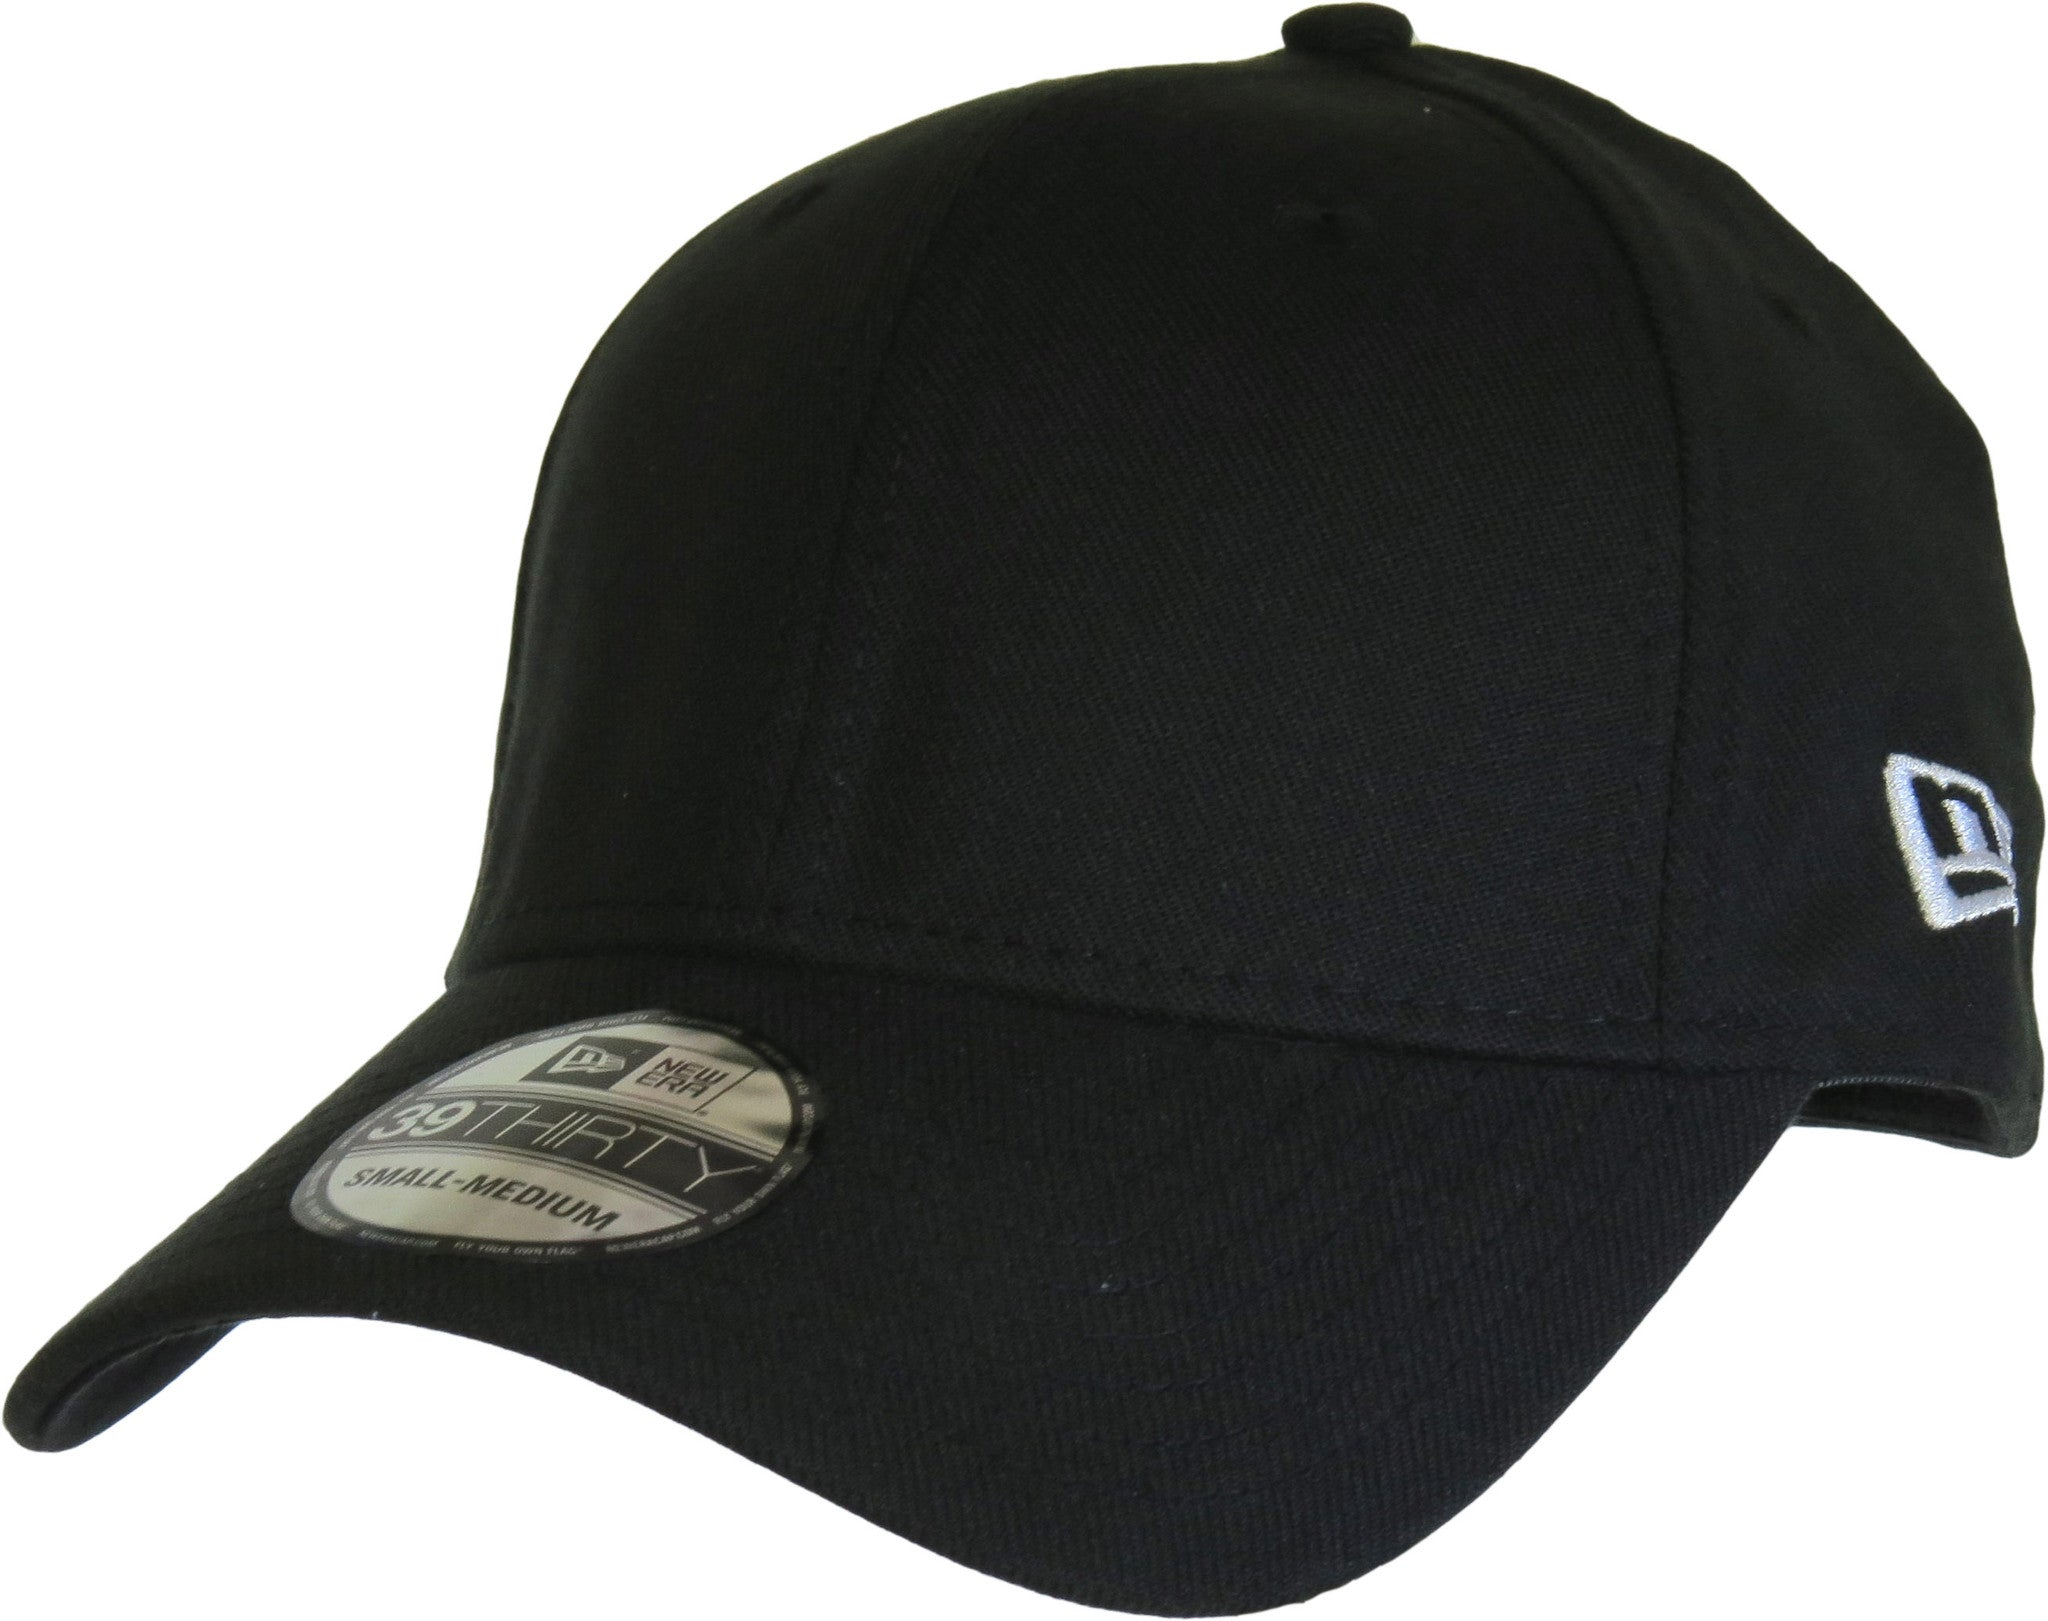 New Era 3930 Classic Curved Peak Stretch Fit Plain Black Baseball Cap -  pumpheadgear ba5538ef2ef